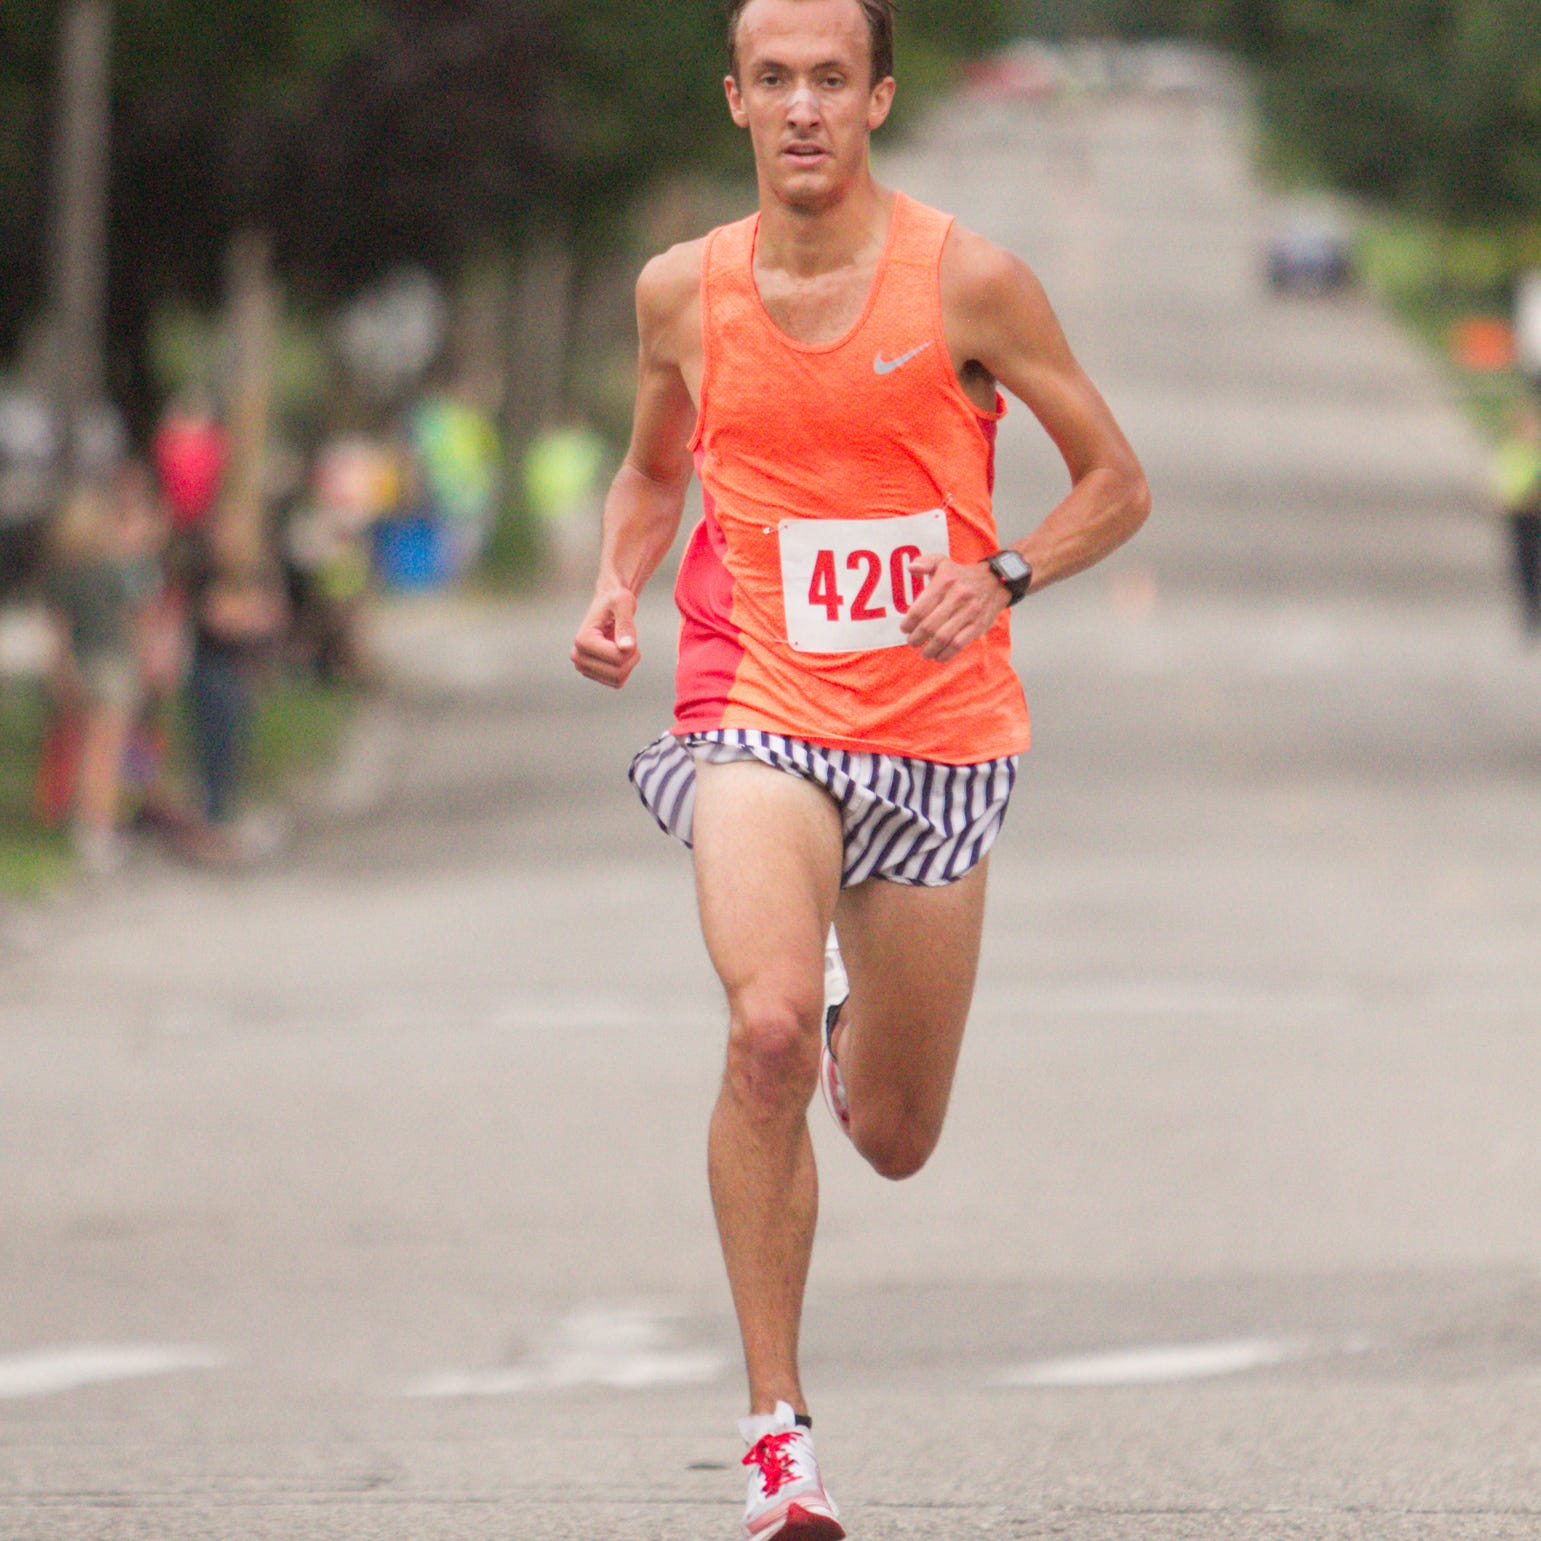 First-time marathoner from Howell finishes second in Grand Rapids